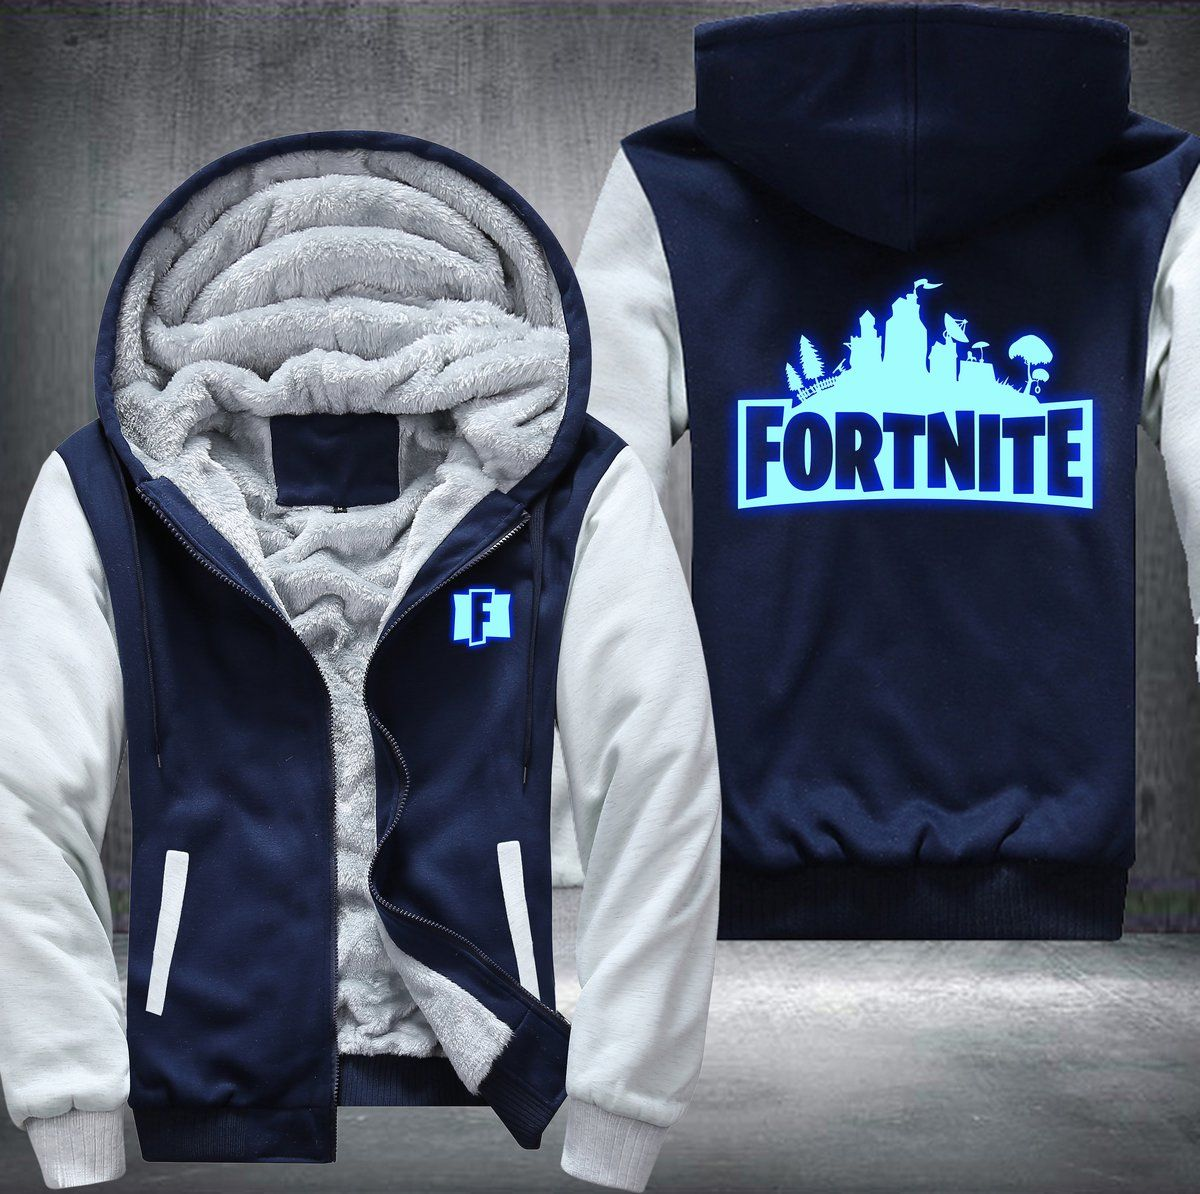 bae9d2f4d2cd GUARANTEED SATISFACTION OR YOUR MONEY BACK! for kid s size please take a  SMALL size.Only for the Fortnite fans. A GLOW IN THE DARK Fleece Jacket.